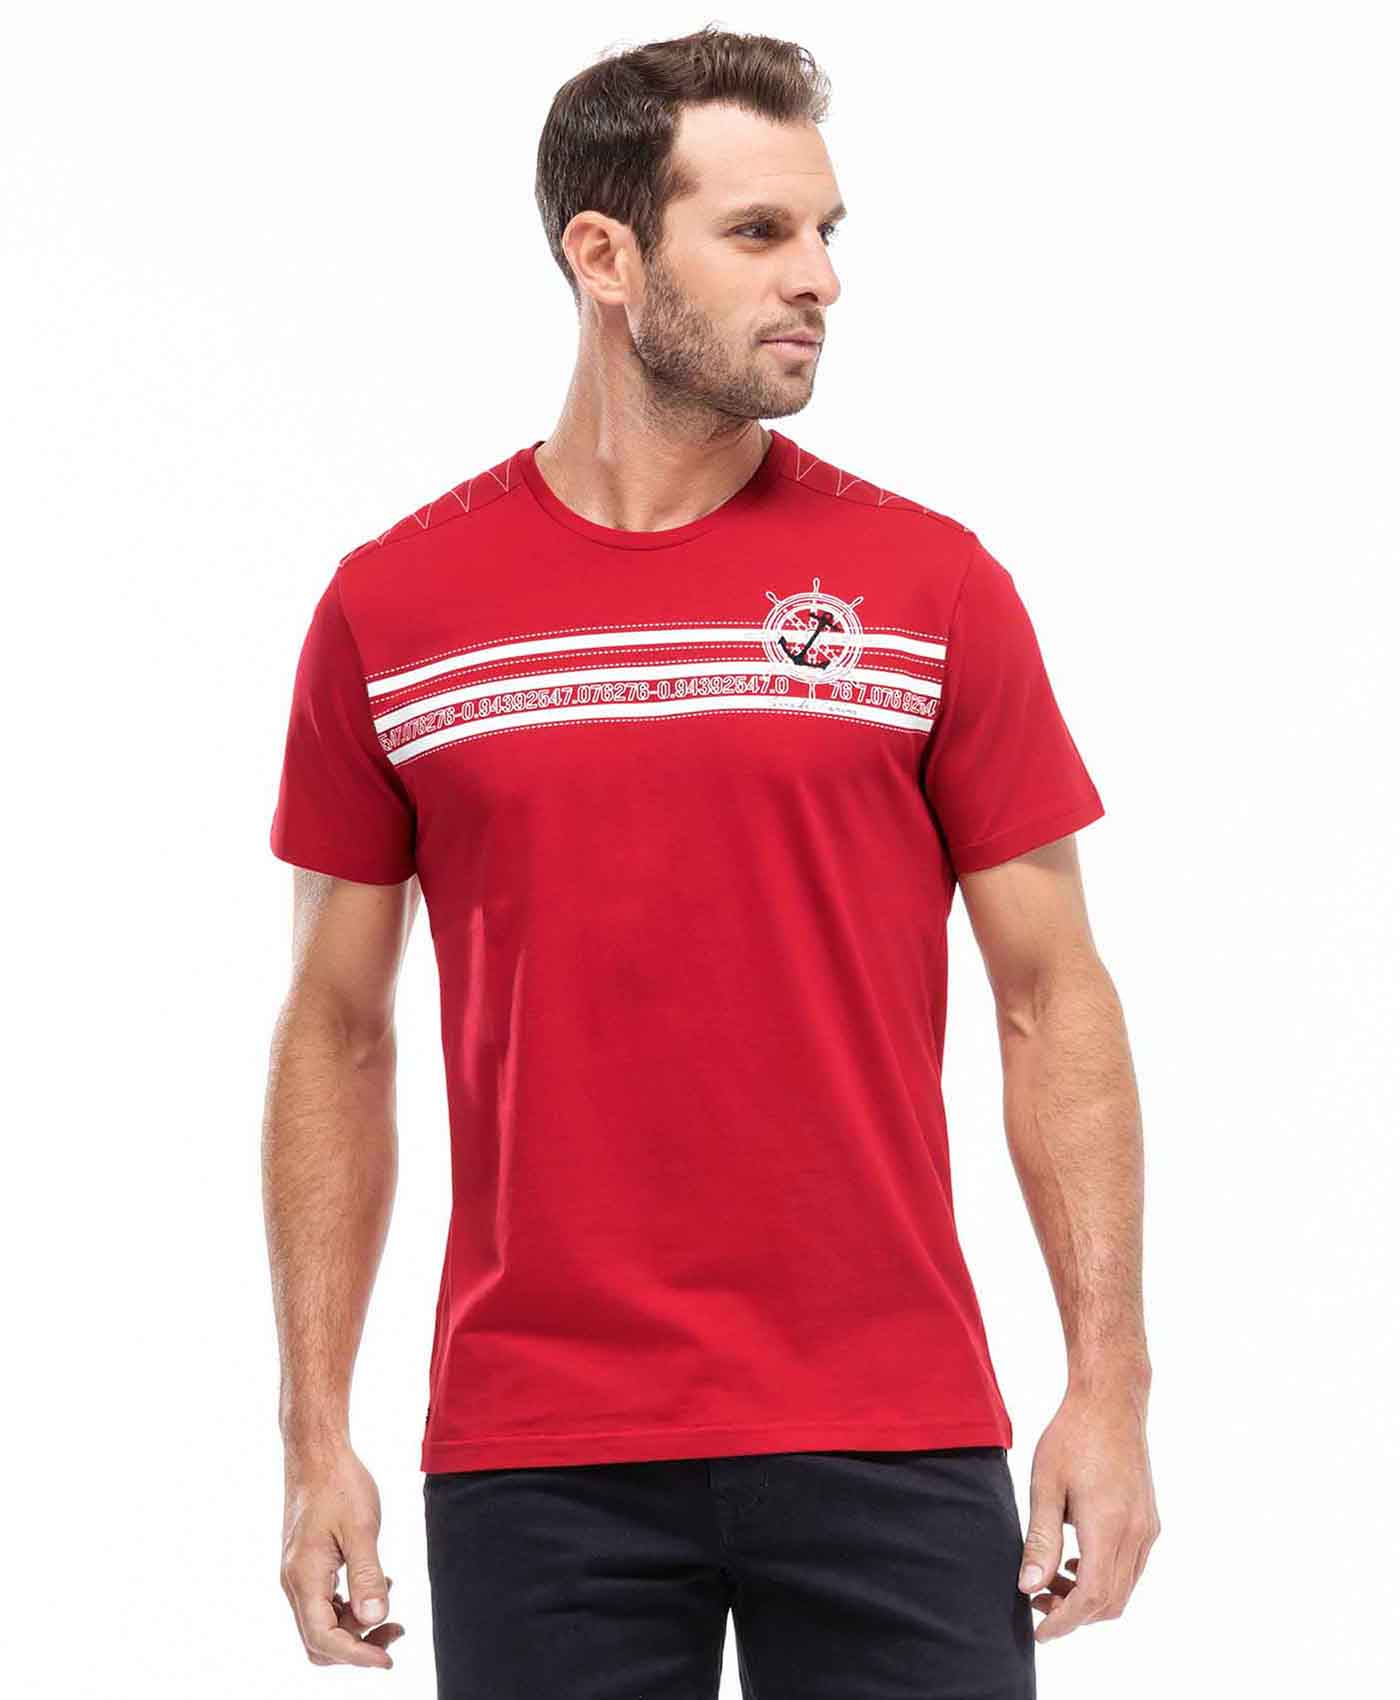 Tee-shirt rouge homme - Mode marine Homme